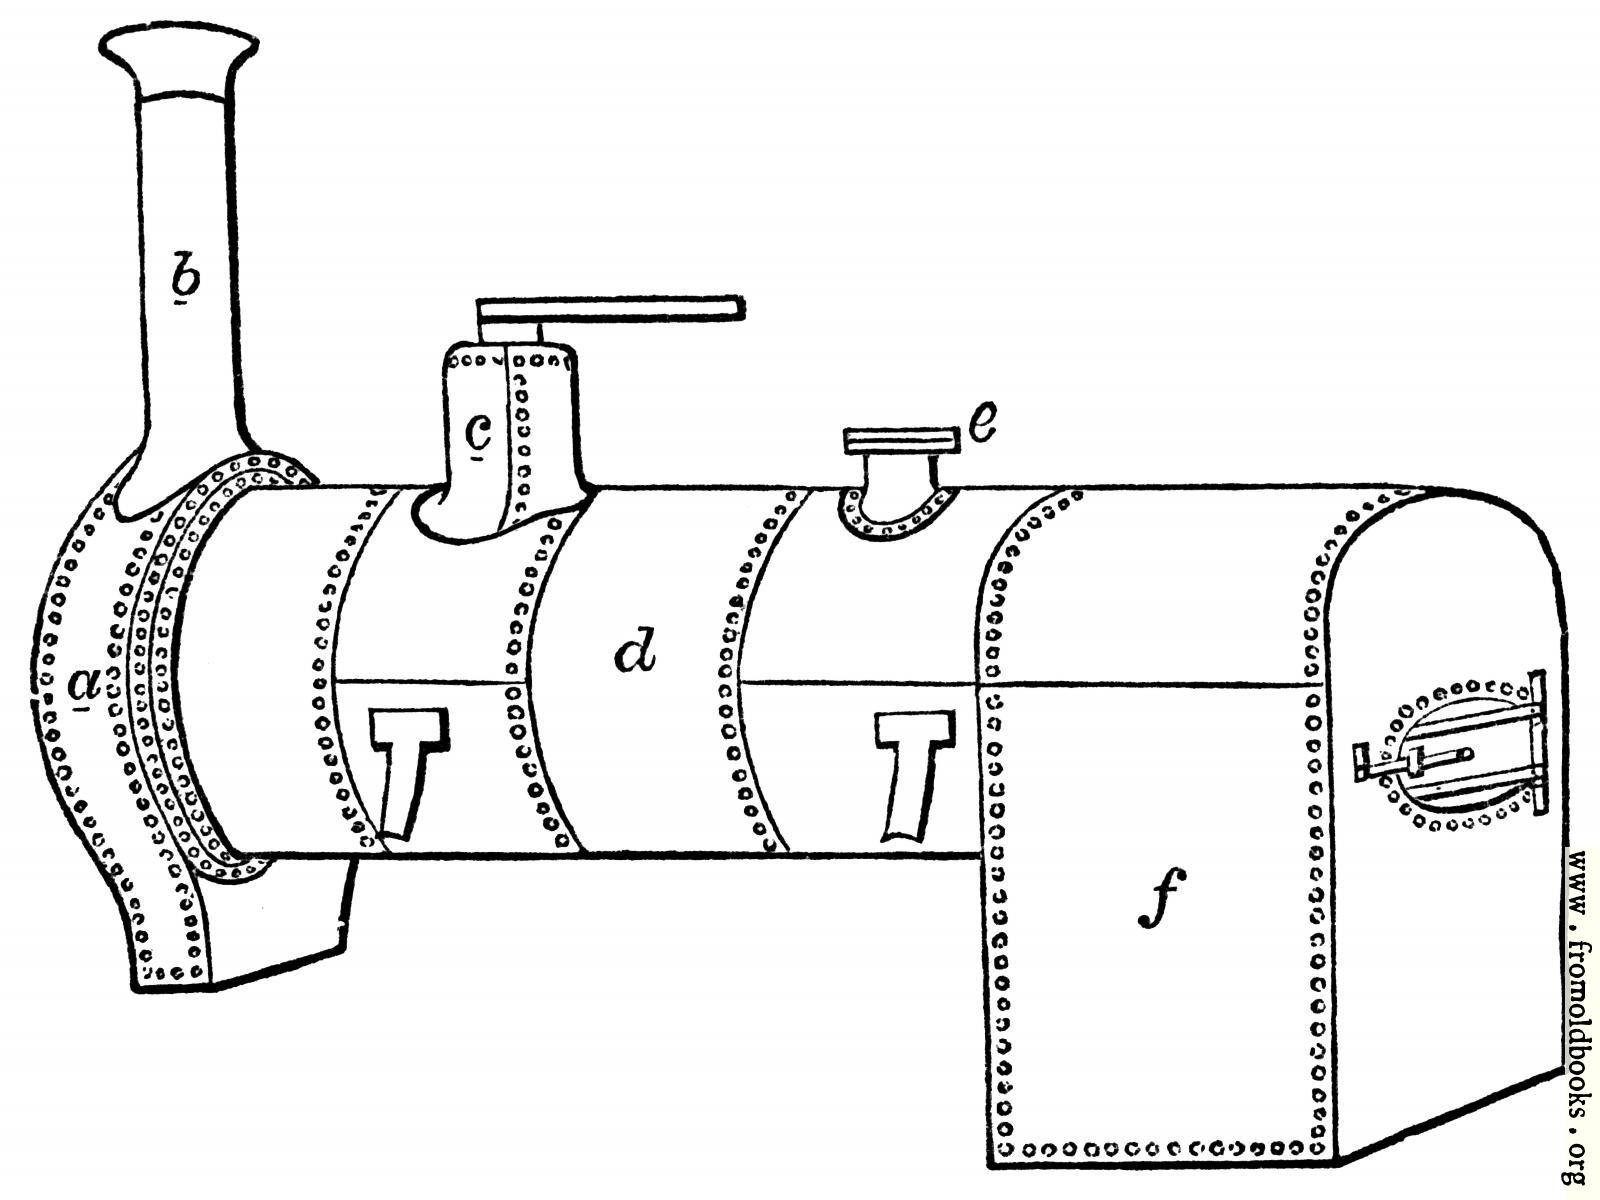 Locomotive Boiler Diagram